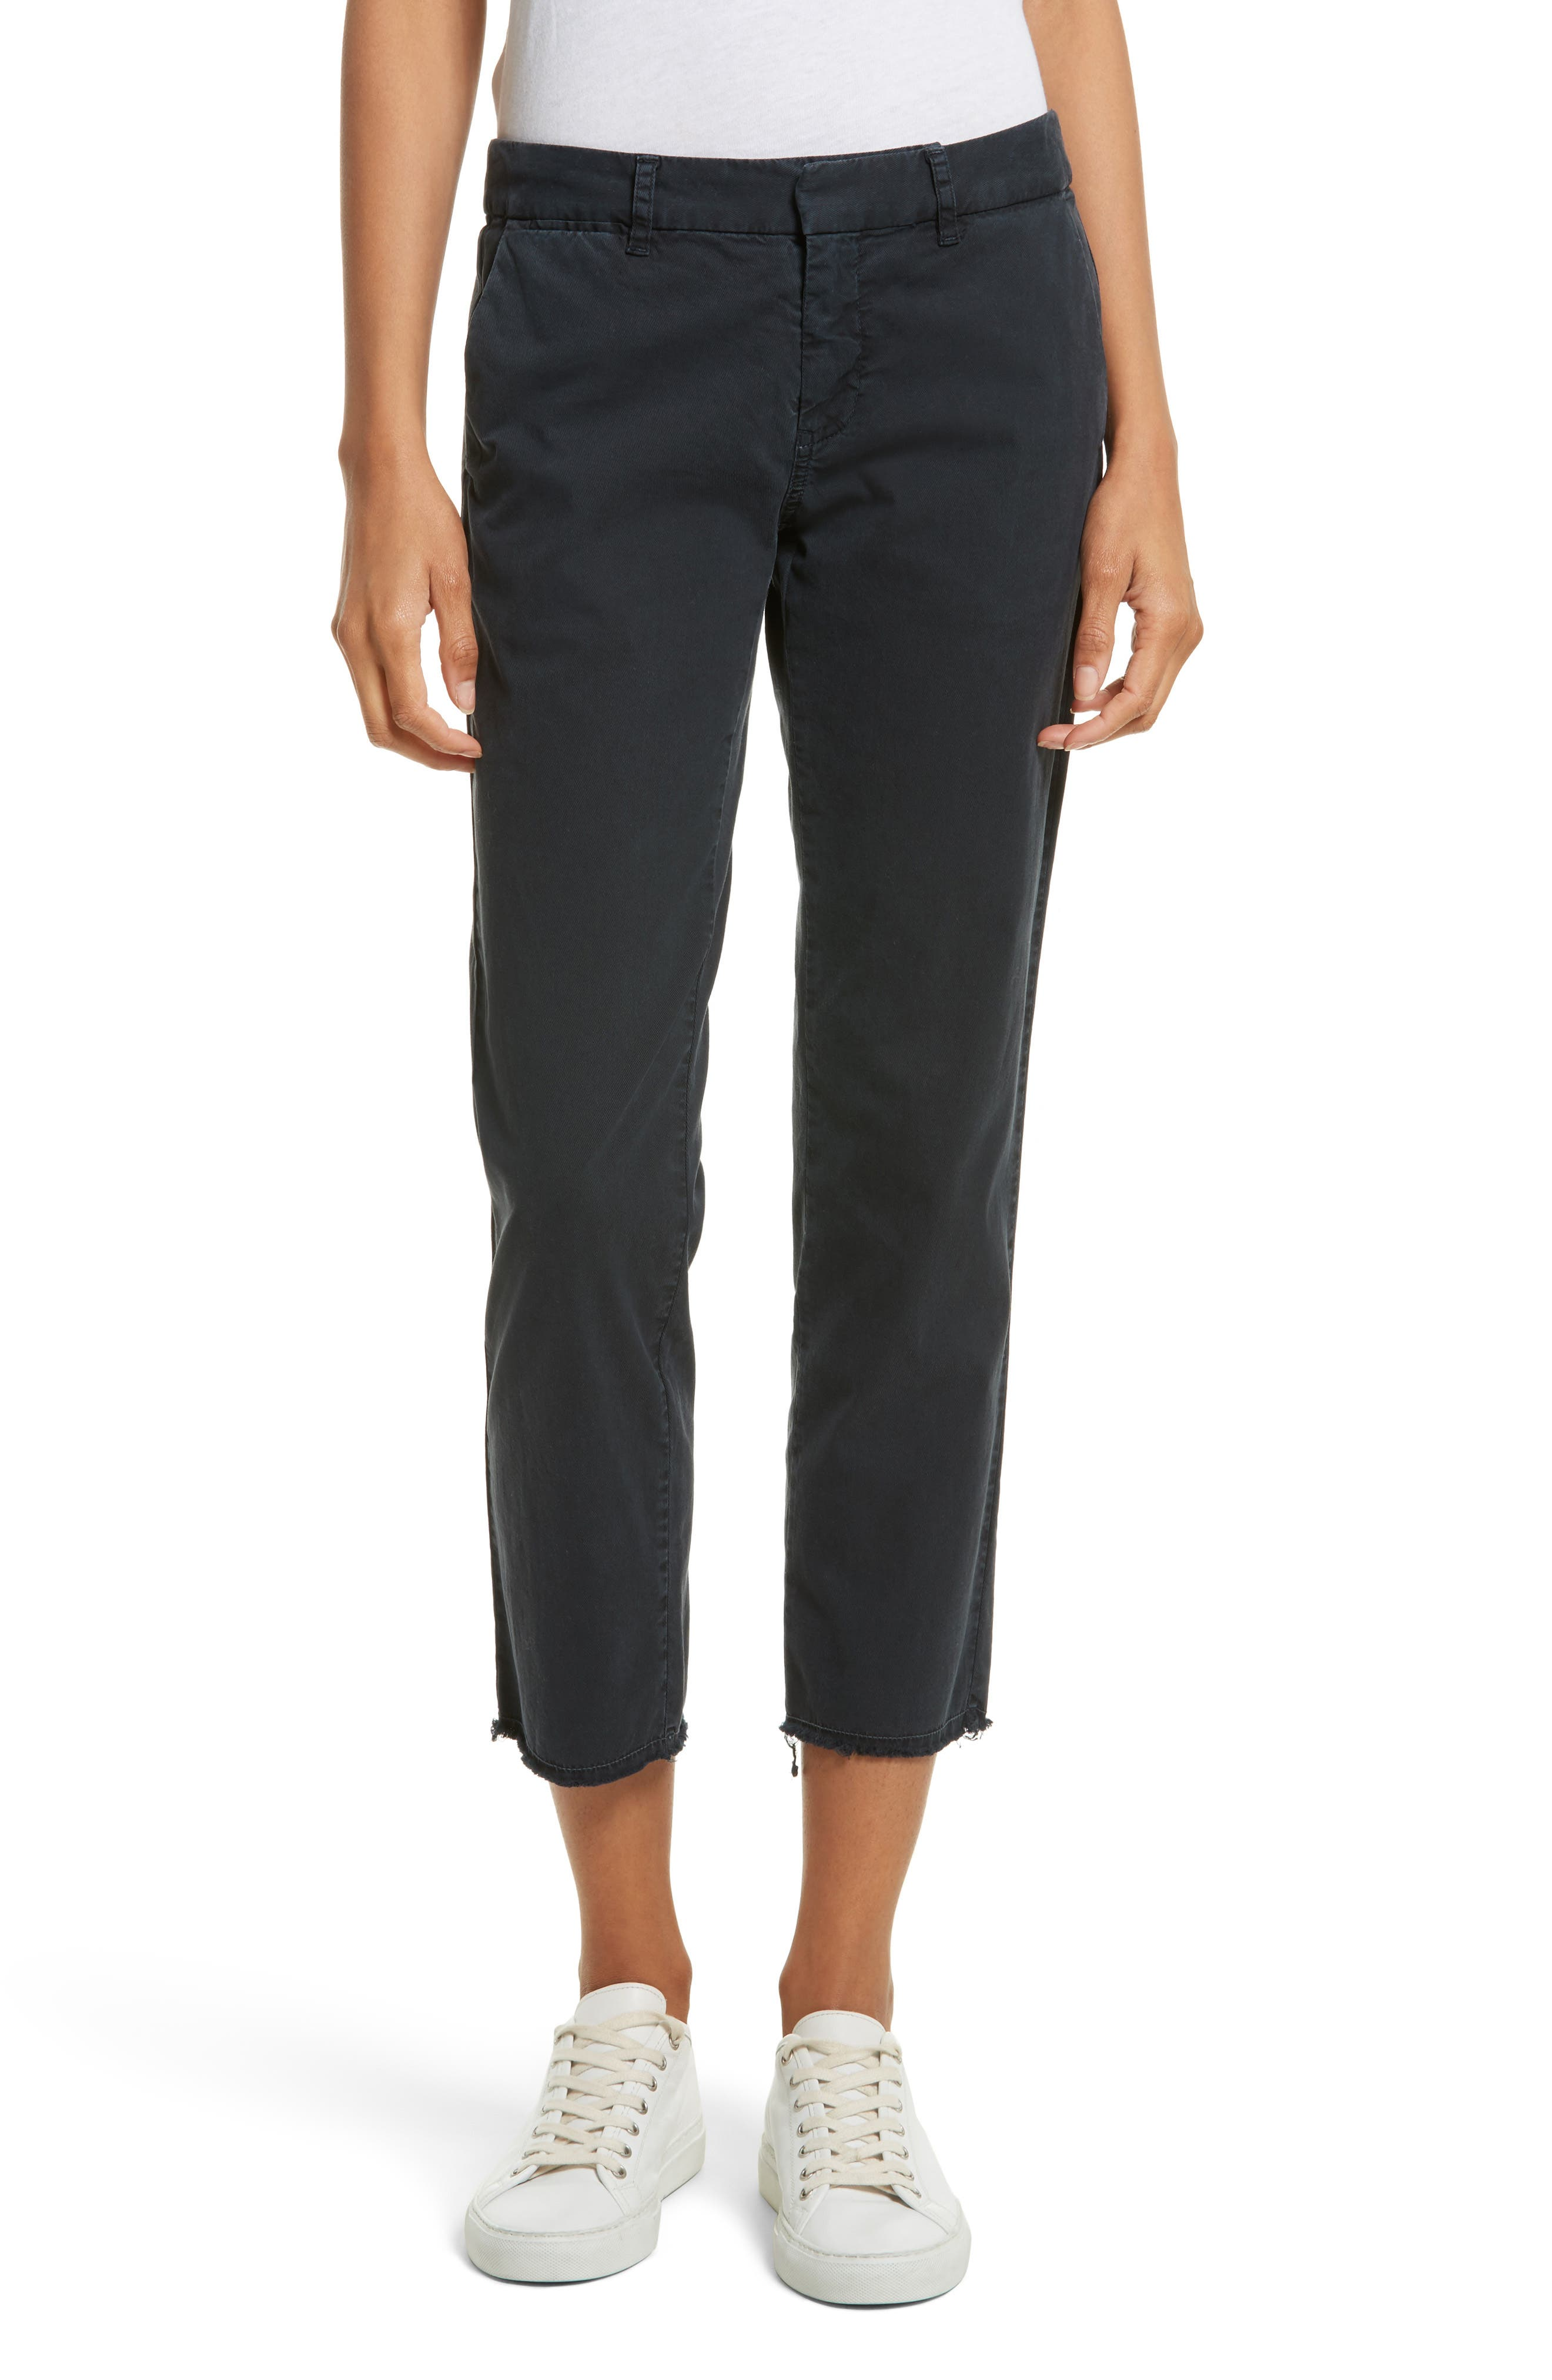 East Hampton Stretch Cotton Twill Crop Pants,                             Main thumbnail 1, color,                             Dark Navy